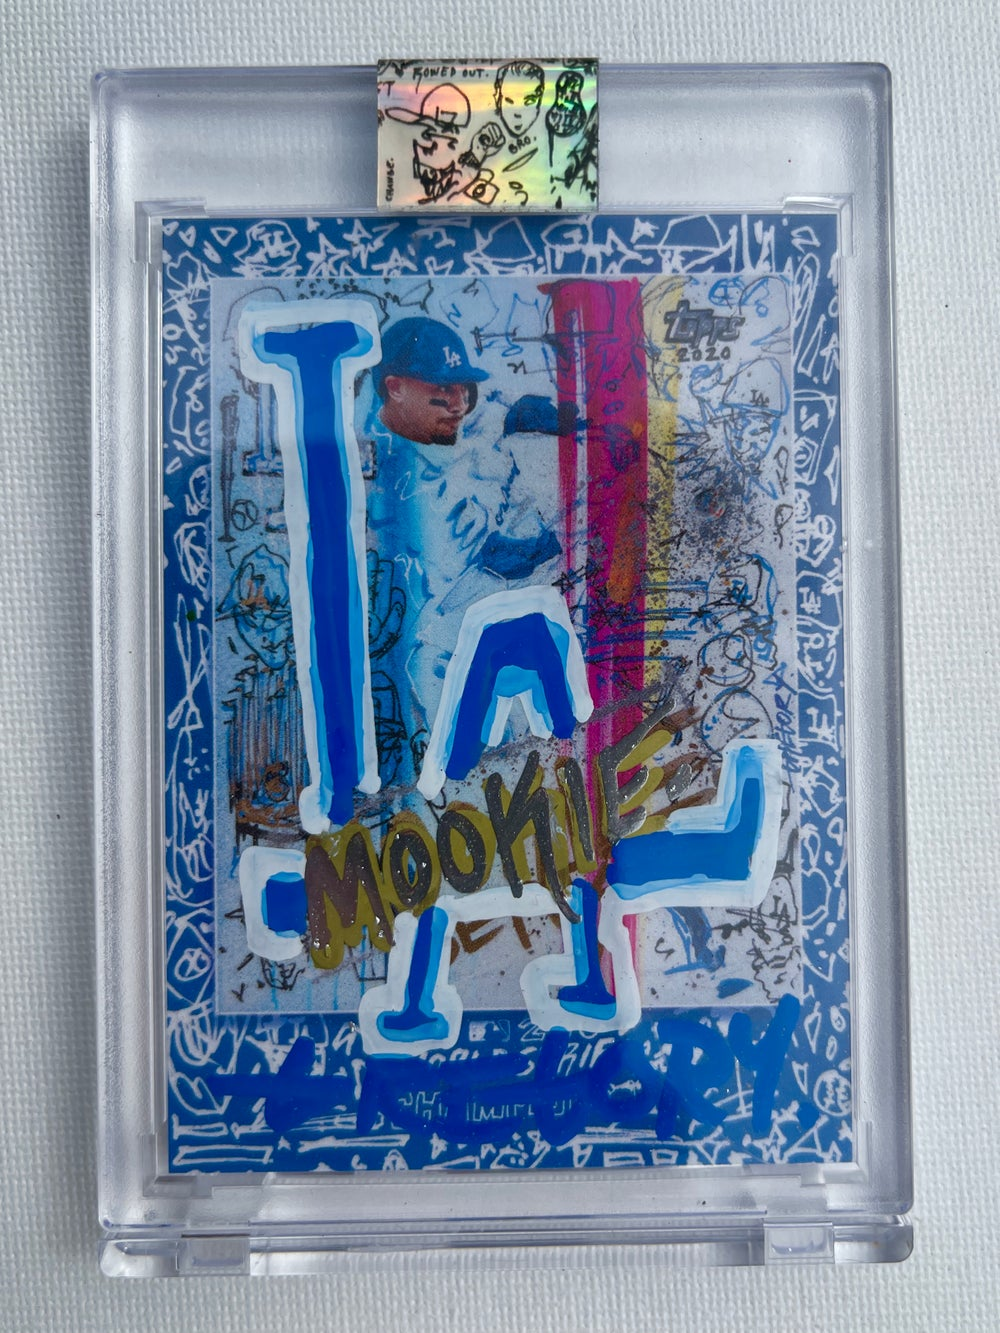 DODGERS BLUE MOOKIE BETTS WORLD SERIES Topps X Gregory Siff Artist Autograph